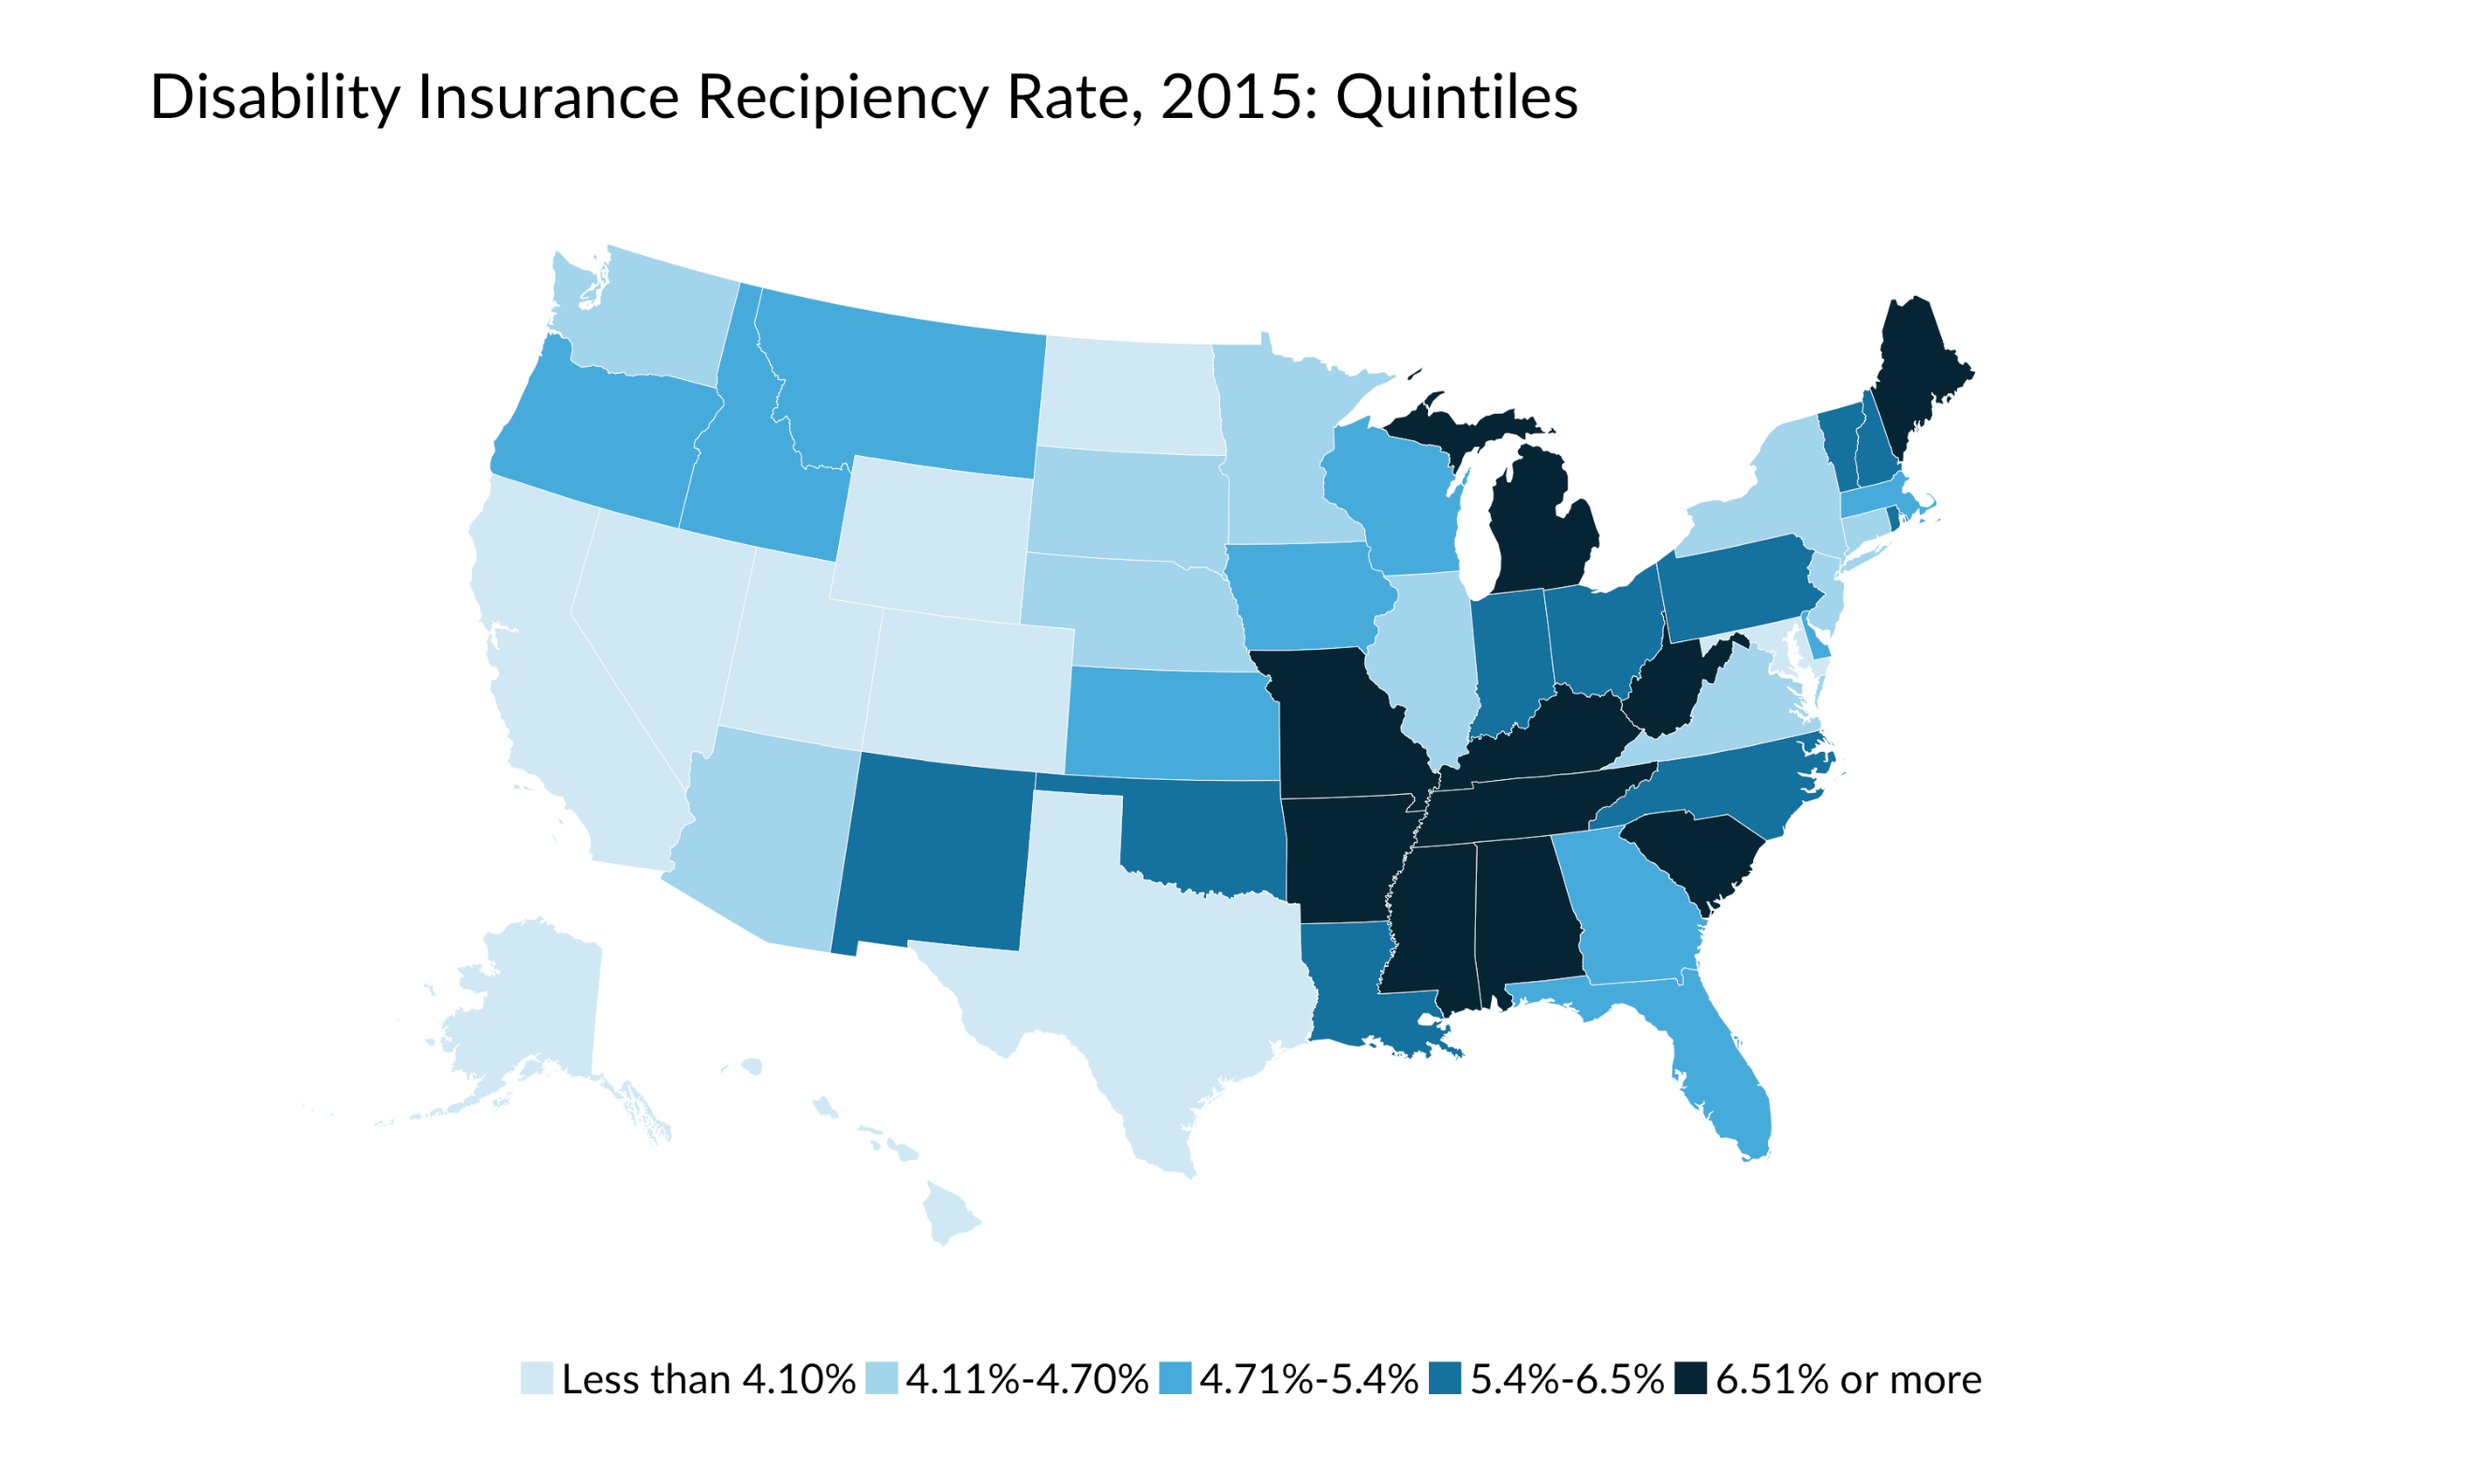 quintiles map of disability insurance recipient rate, 2015